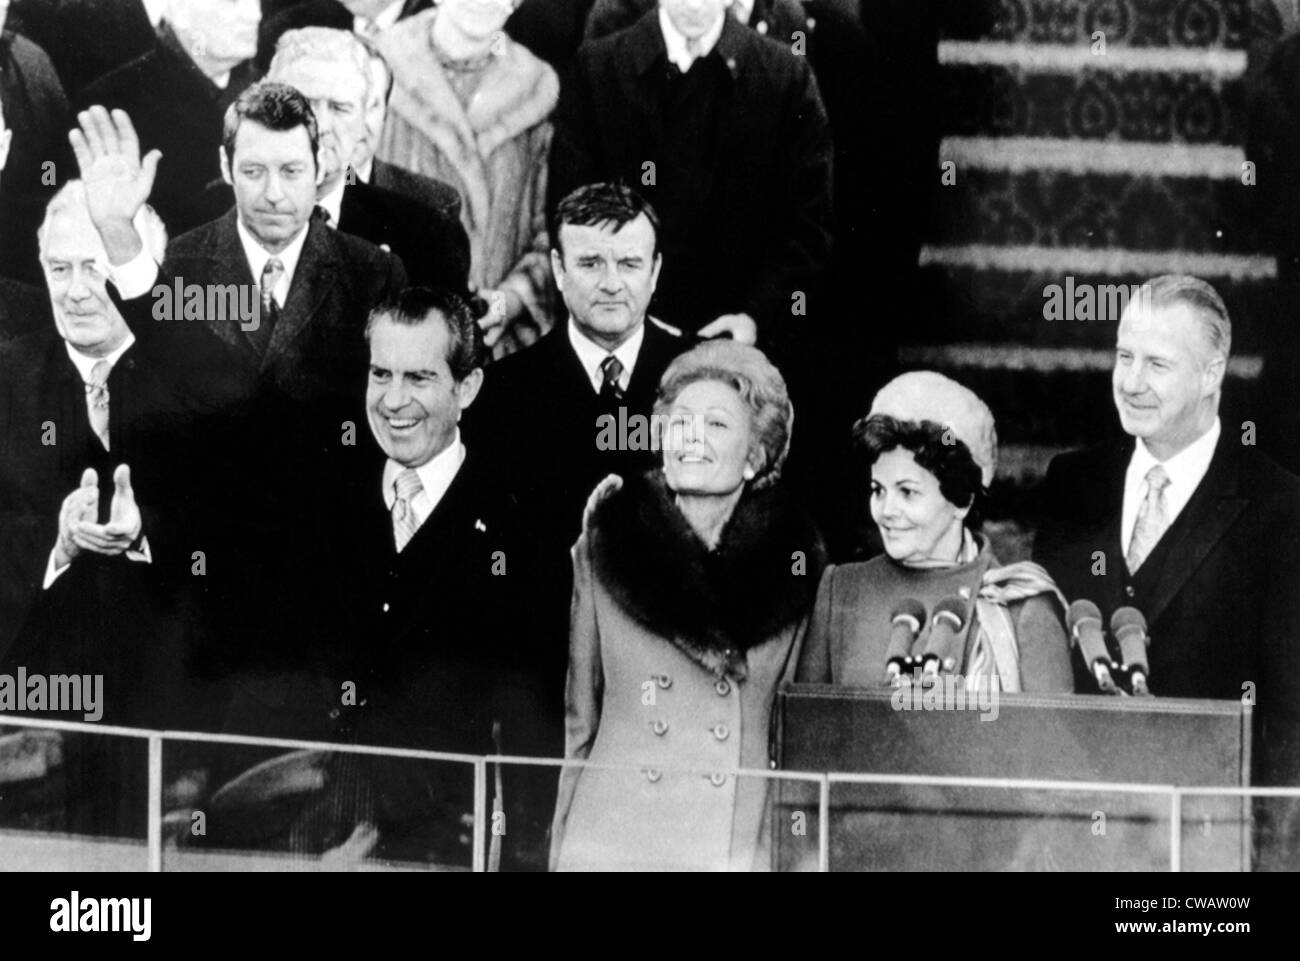 Richard Nixon waves to crowd at inaugural celebration, 01-20-1973.. Courtesy: CSU Archives / Everett Collection - Stock Image